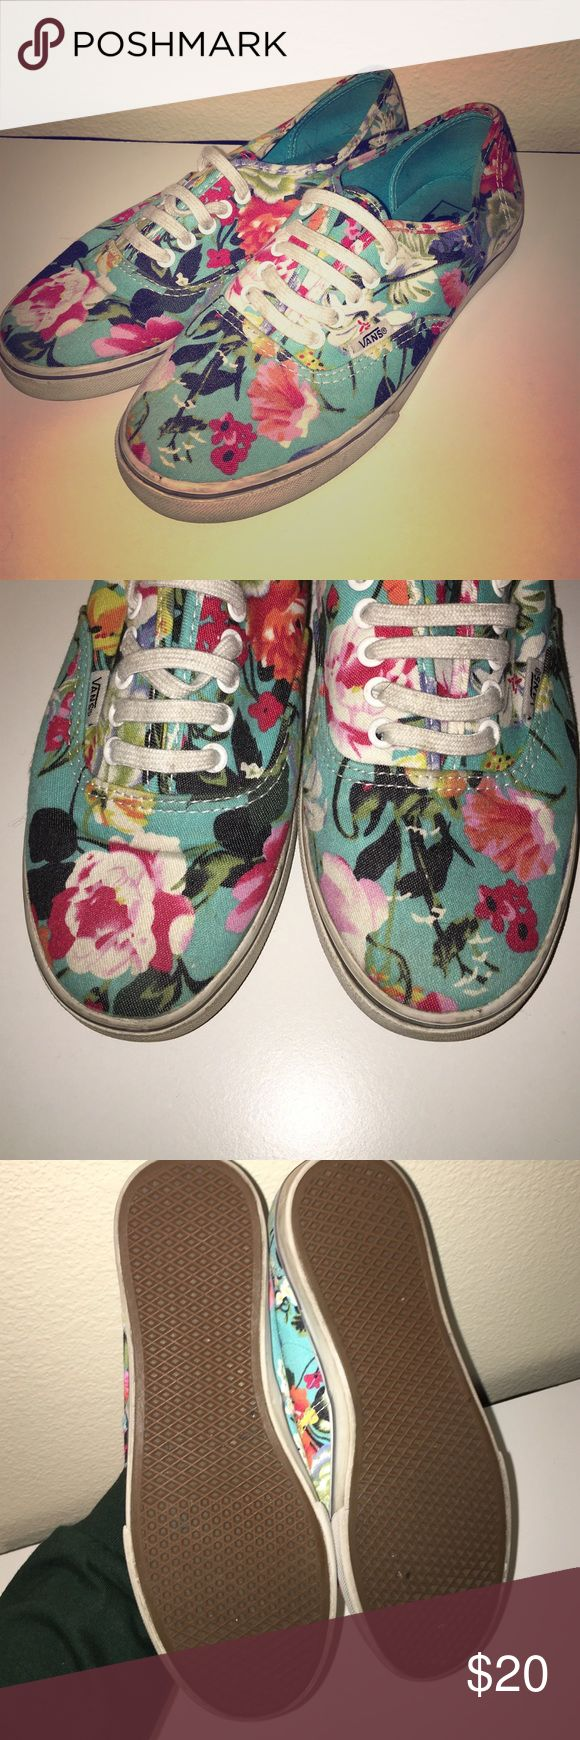 Floral Vans Great condition, slight wear and tear Vans Shoes Sneakers